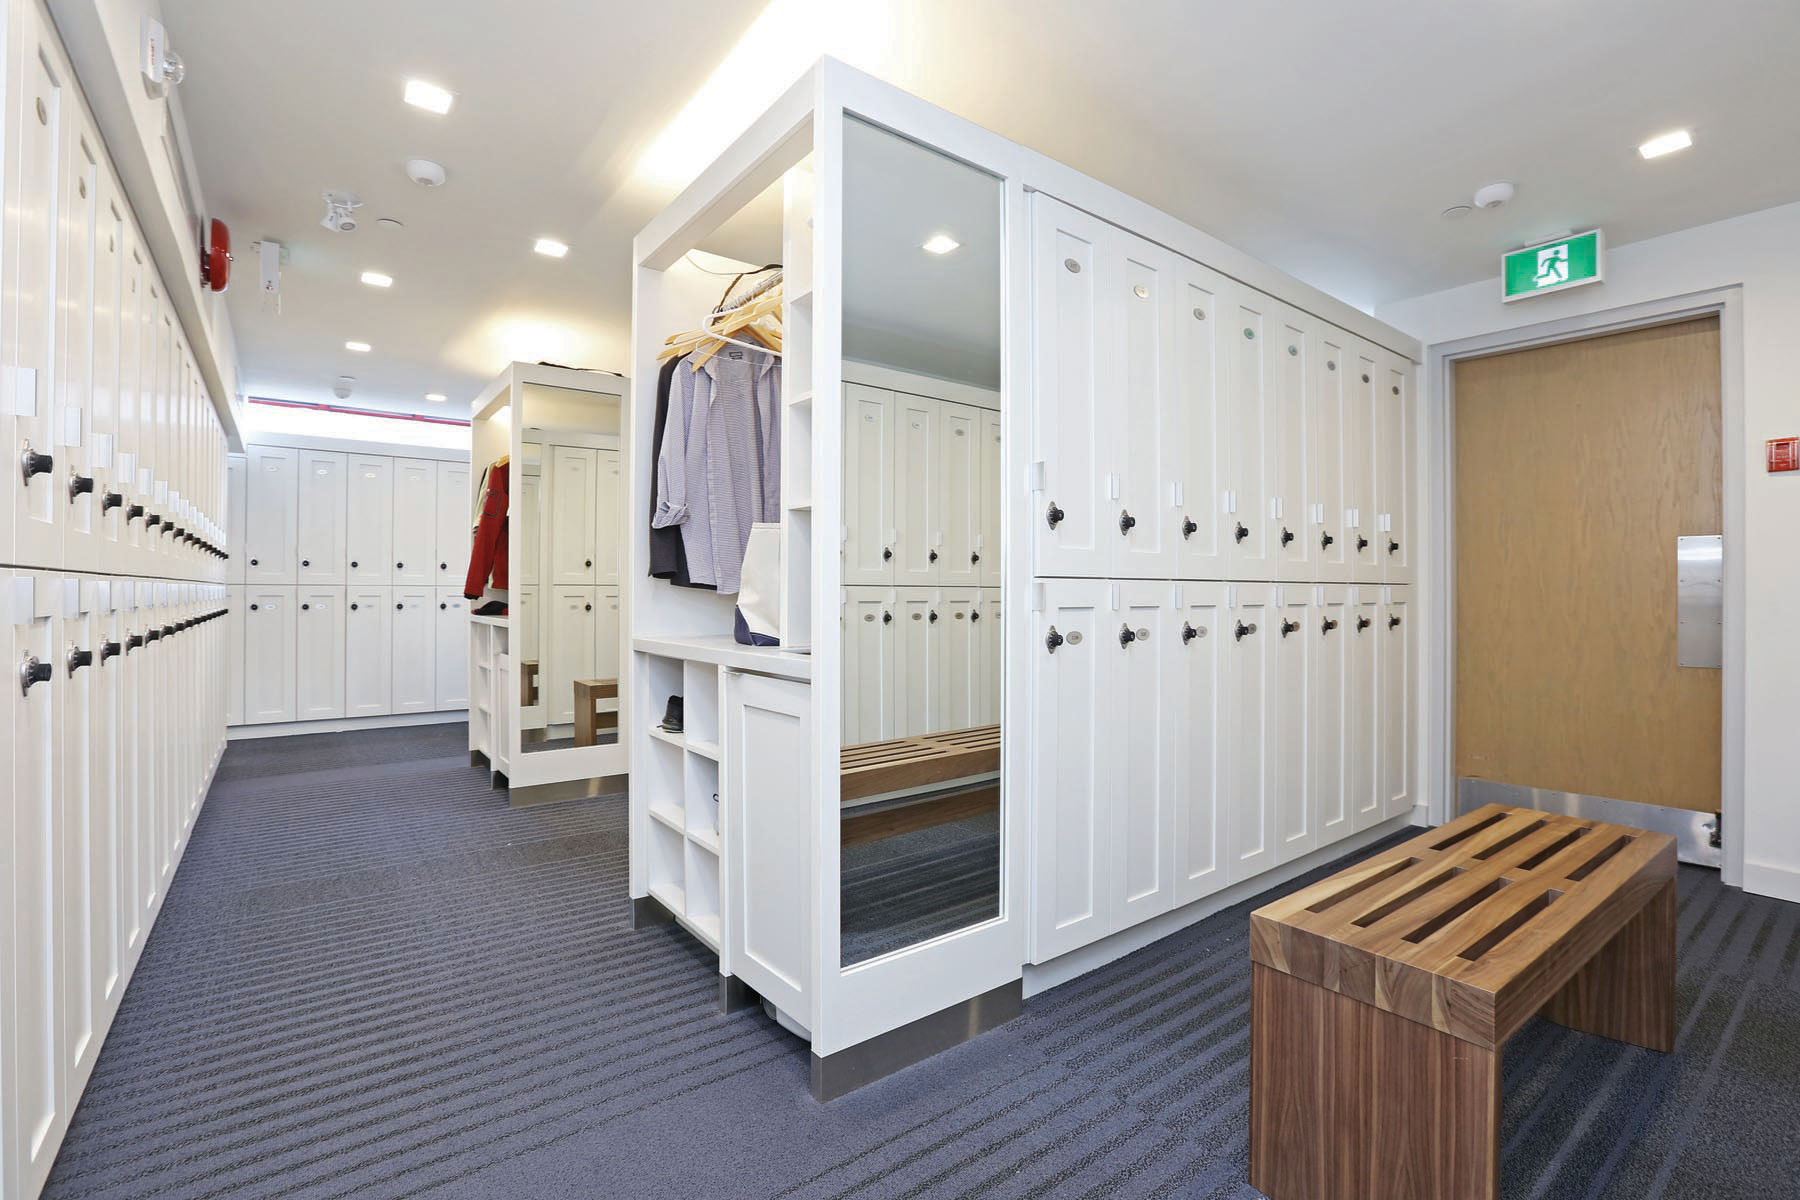 Large white wood lockers with full length mirror, wardrobe space and wood bench